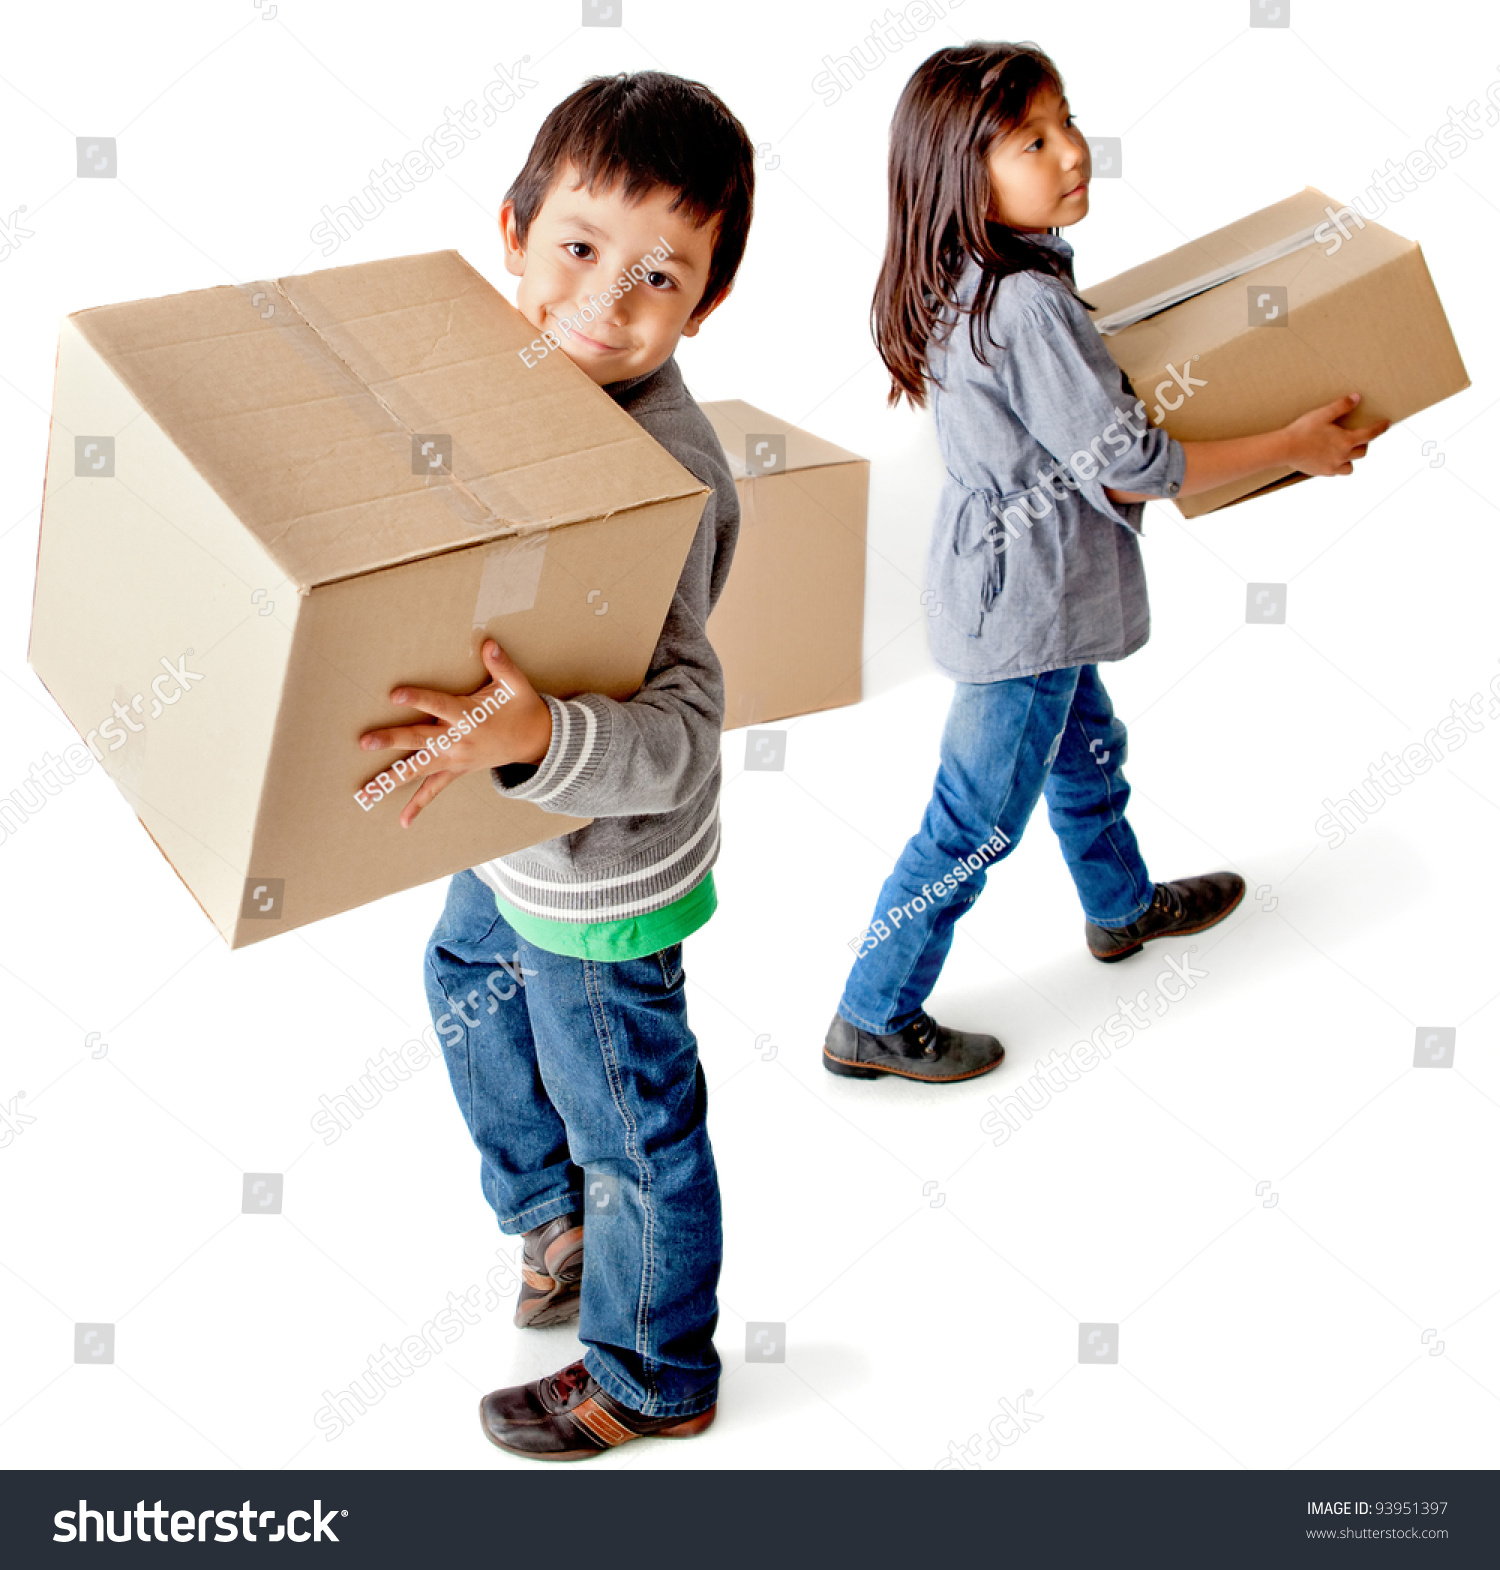 kids moving house carrying cardboard boxes stock photo 93951397 shutterstock. Black Bedroom Furniture Sets. Home Design Ideas